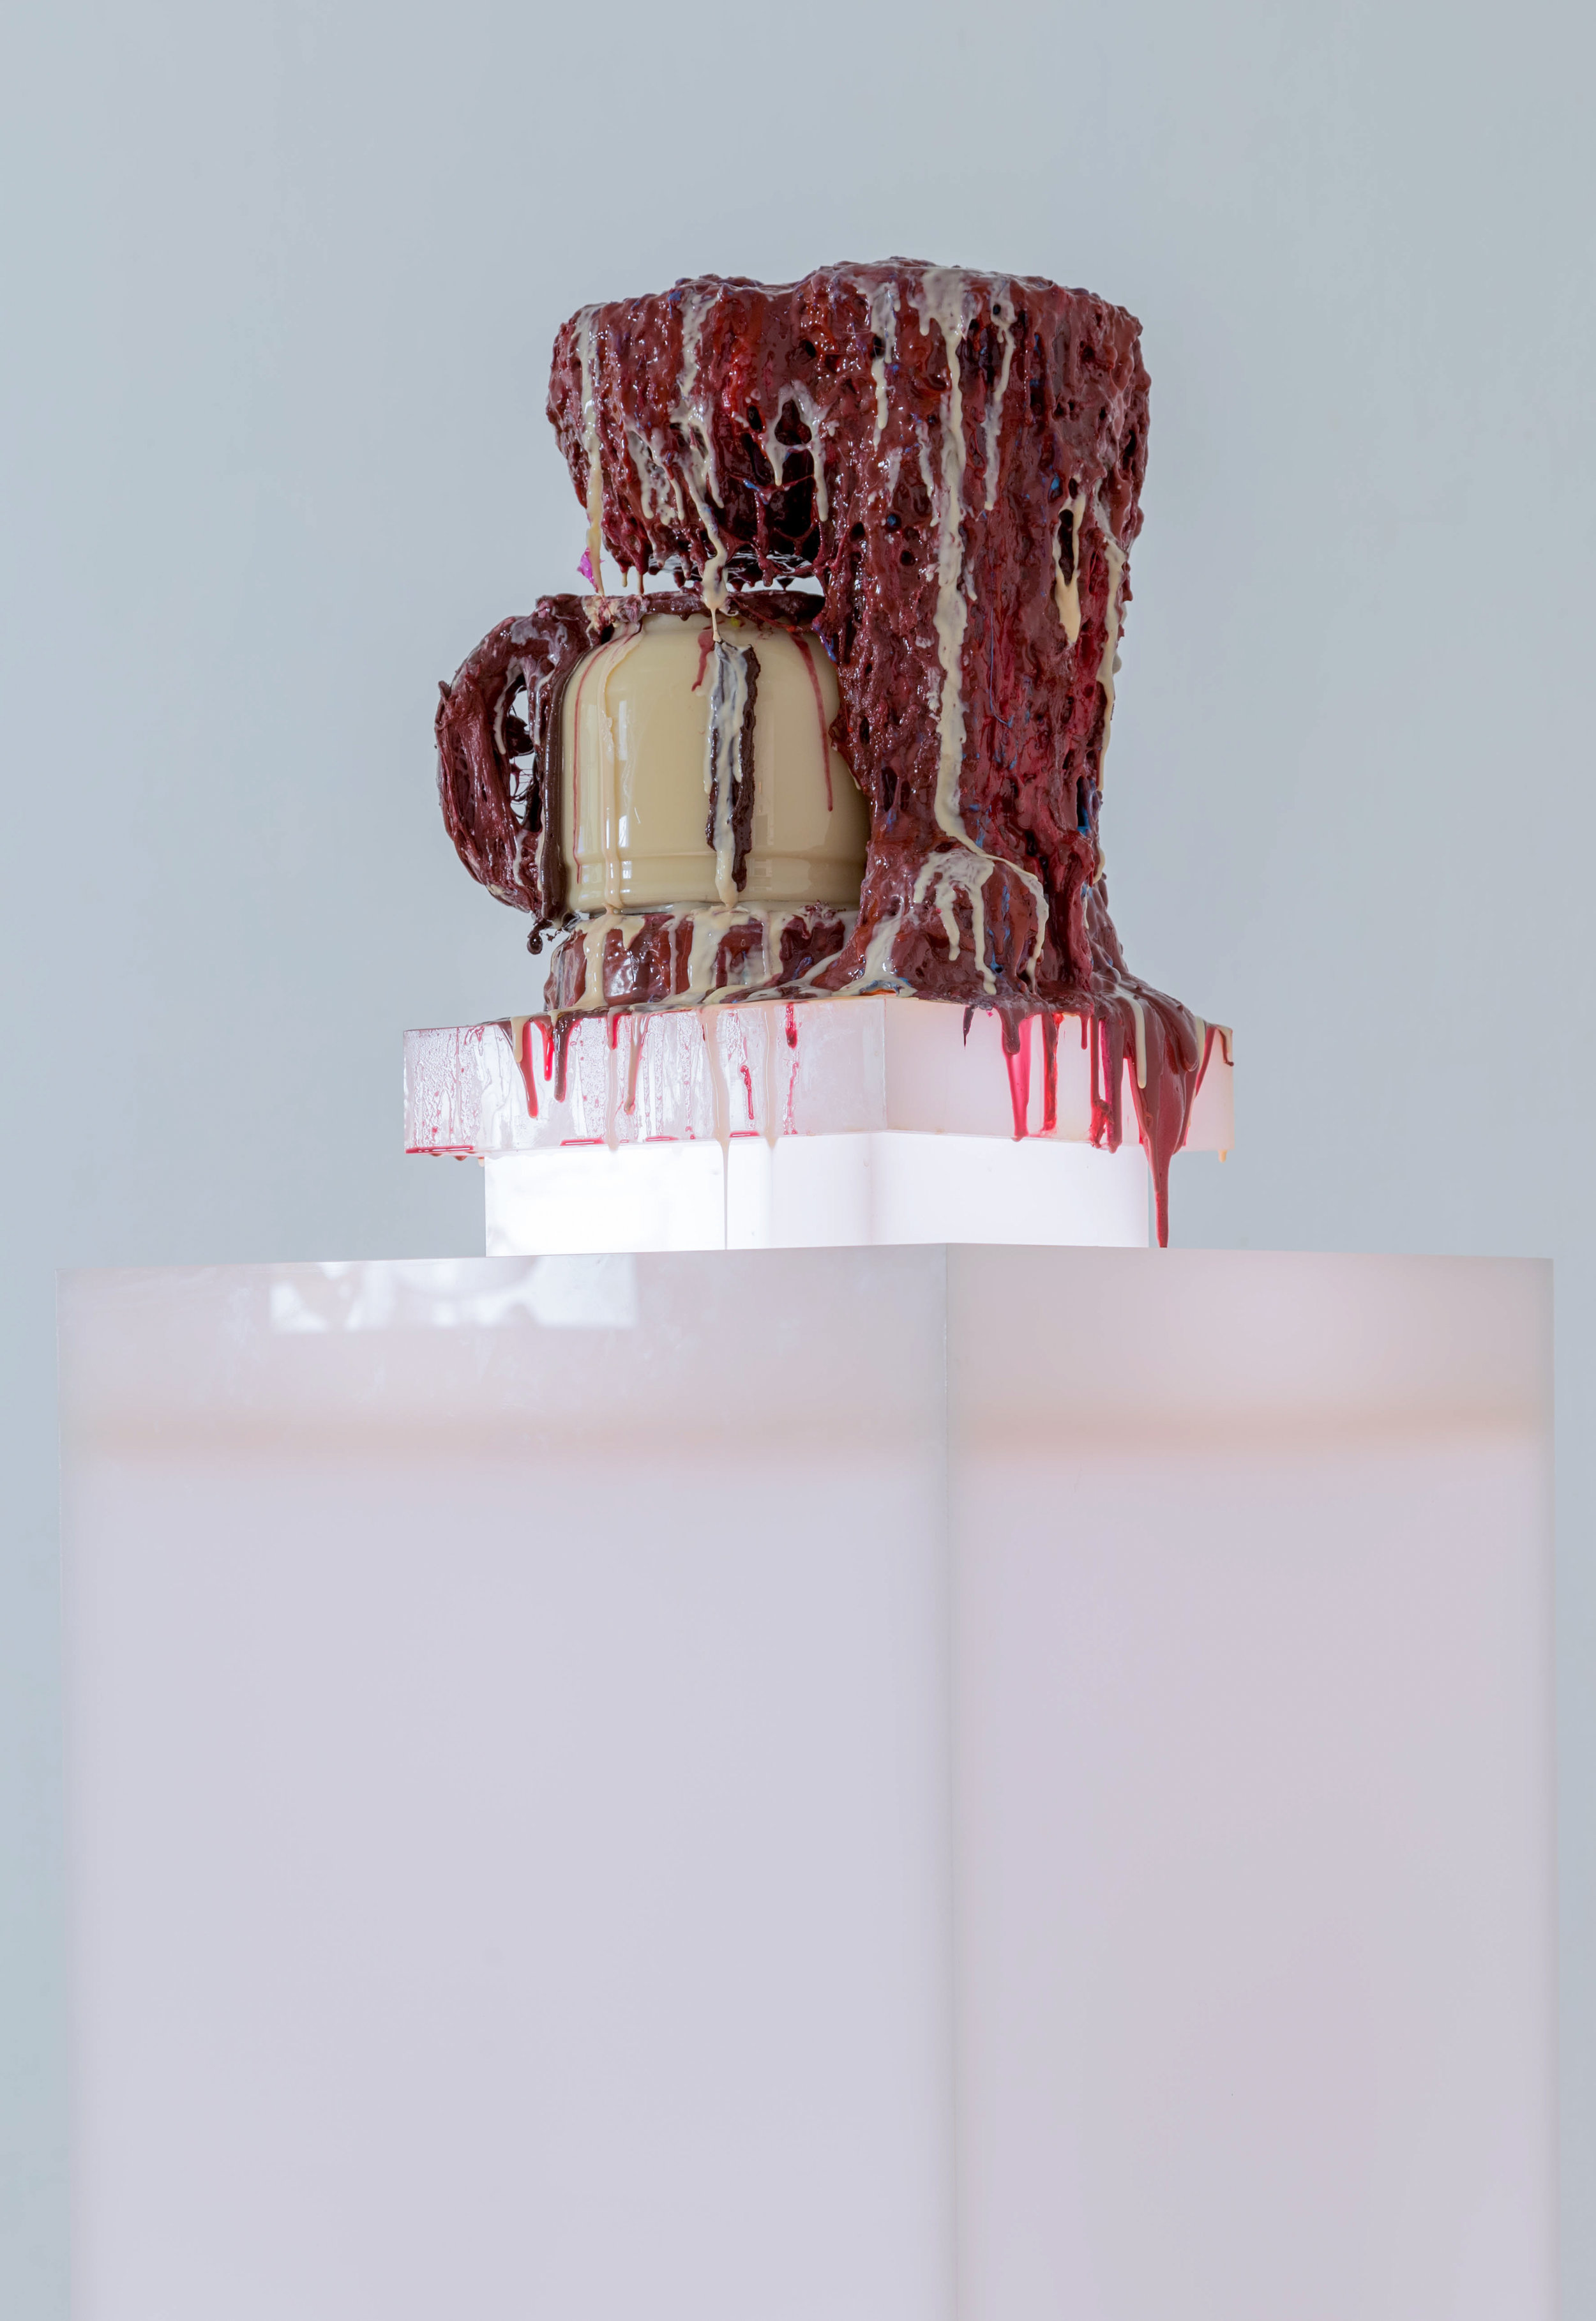 The Consumed Body Purification System: Prick! Drip! Sip!  Coffee maker, plastic reservoir, pump, urethane foam, silicone rubber, acrylic pedestal, rubber tubing, water, tempra paint, methycel, LED lights 2018 (Installation view from  CONSUMED  @ California Institute Of The Arts)